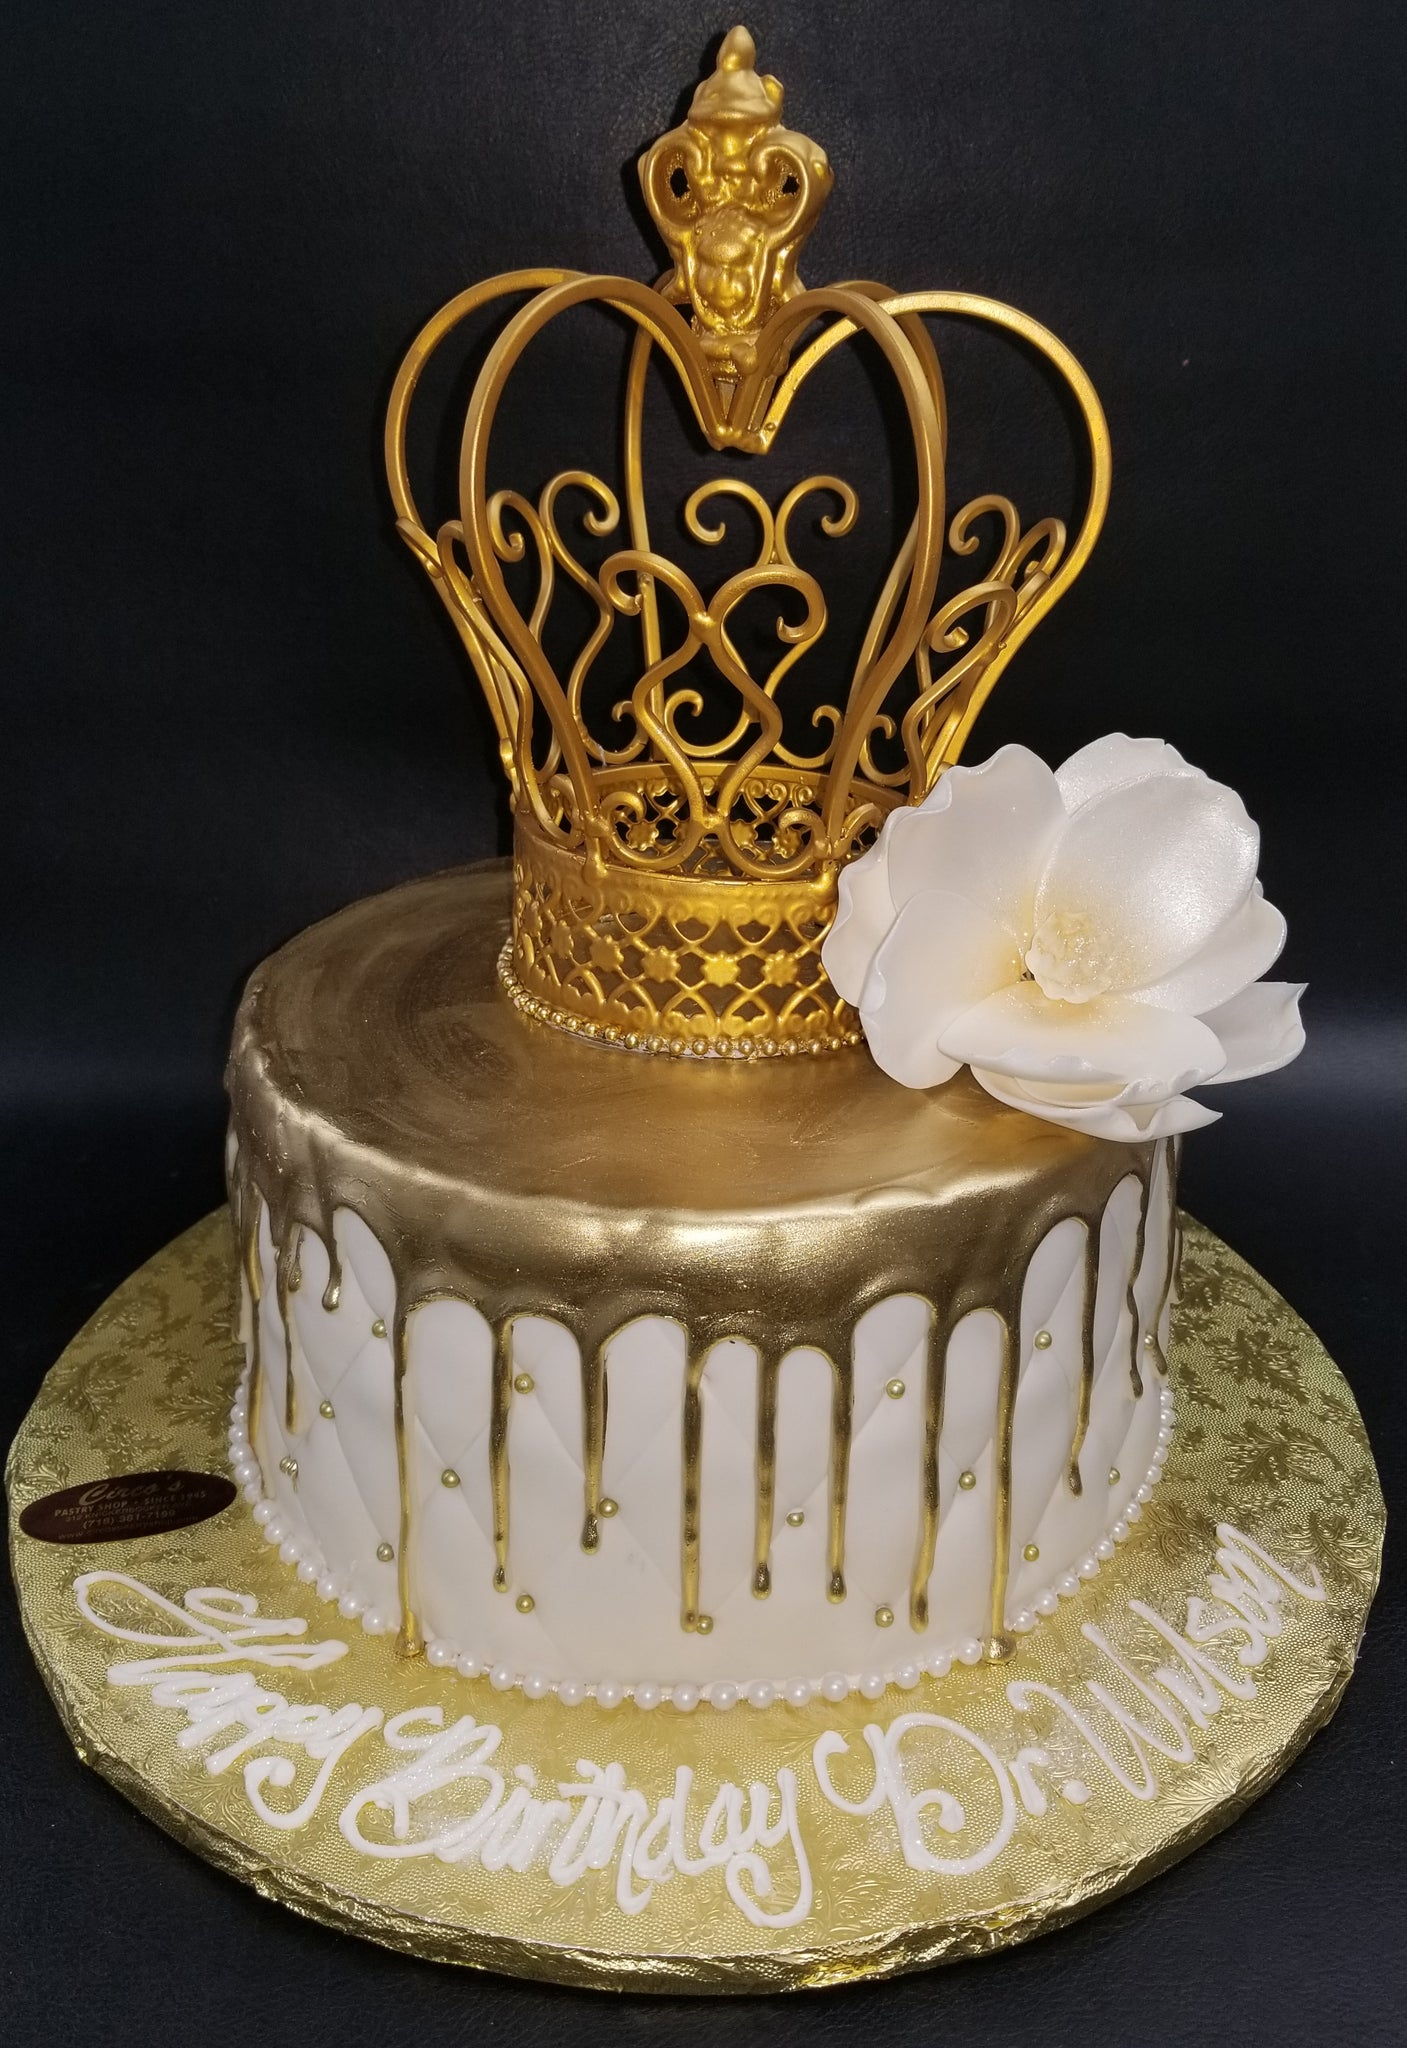 24K Gold dripping cake. B0857